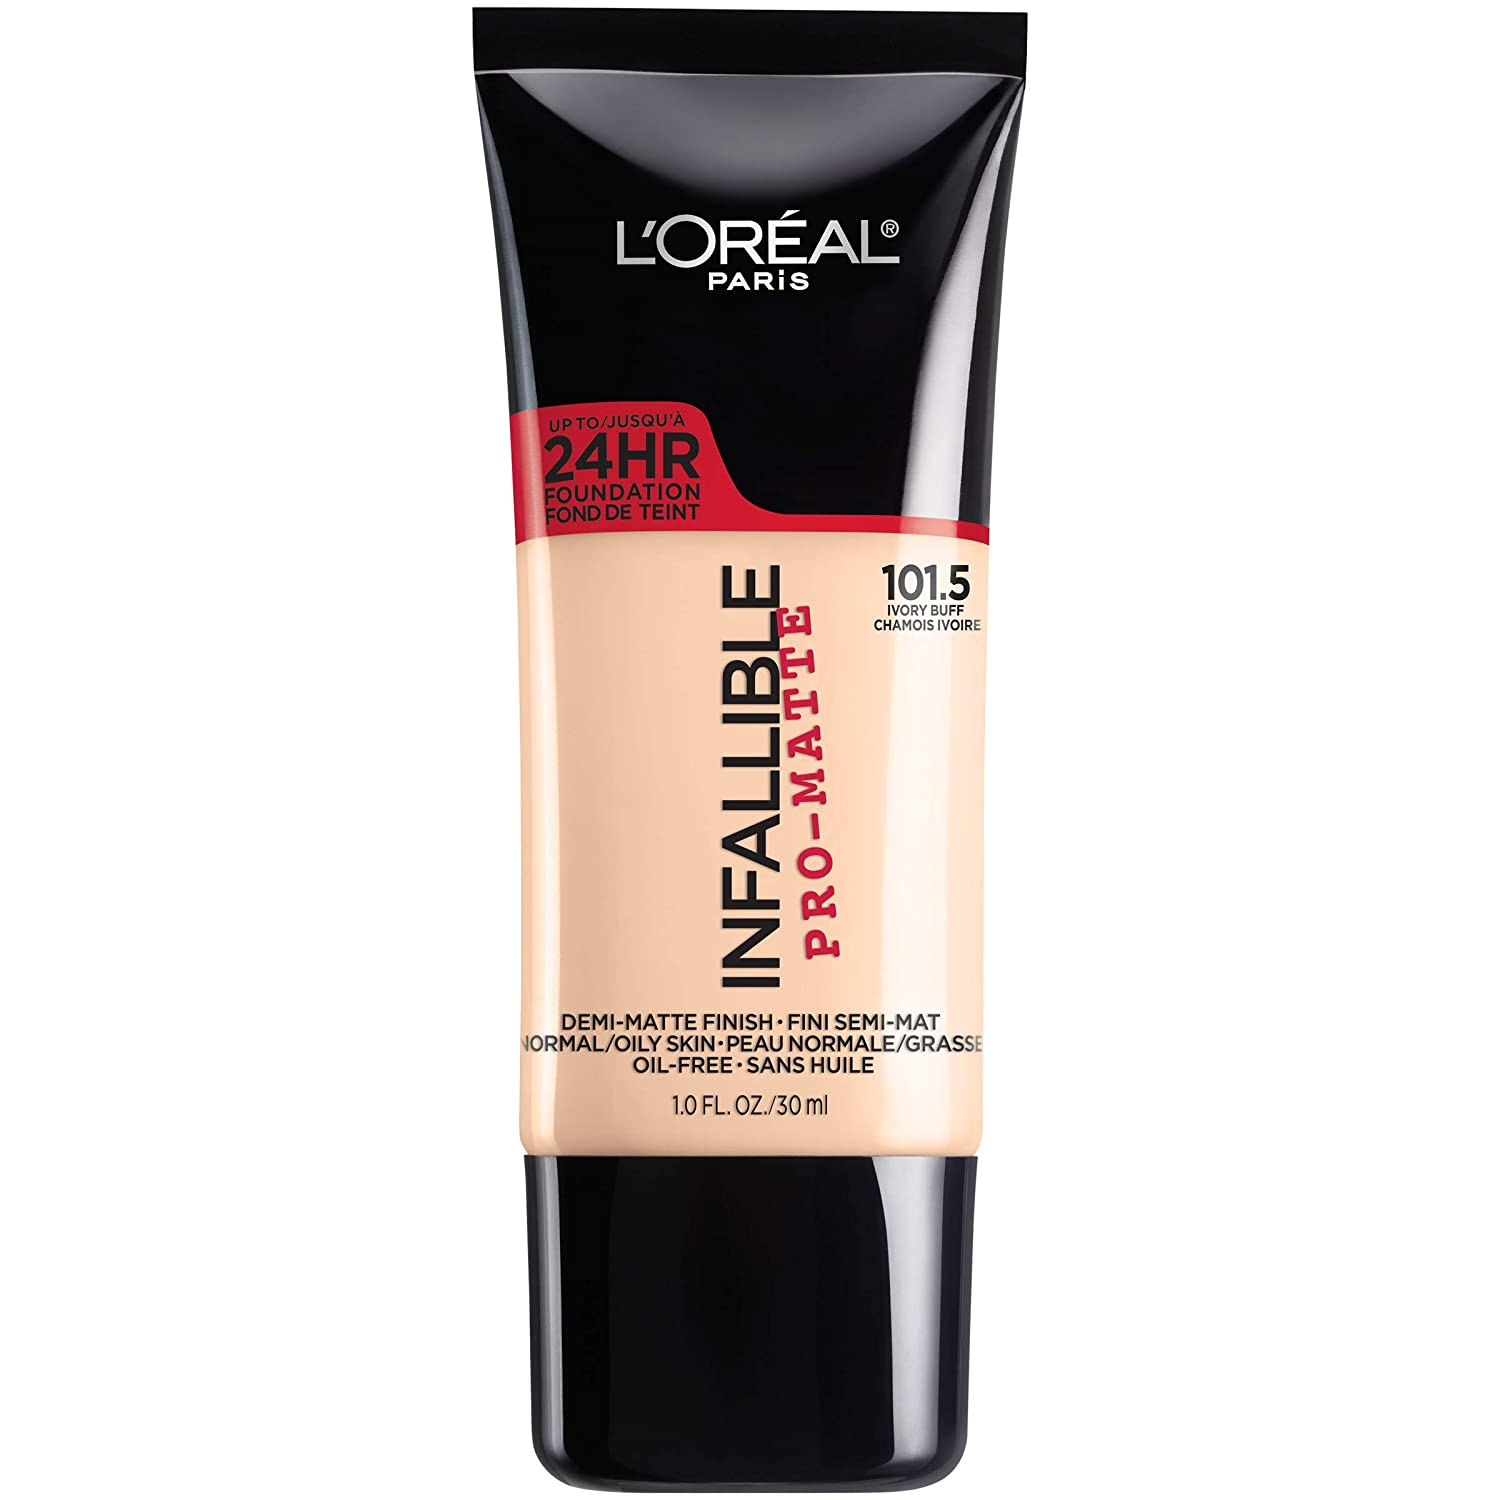 L'Oreal Paris Makeup Infallible Pro-Matte Liquid Longwear Foundation, Ivory Buff 101.5, 1 fl. oz.